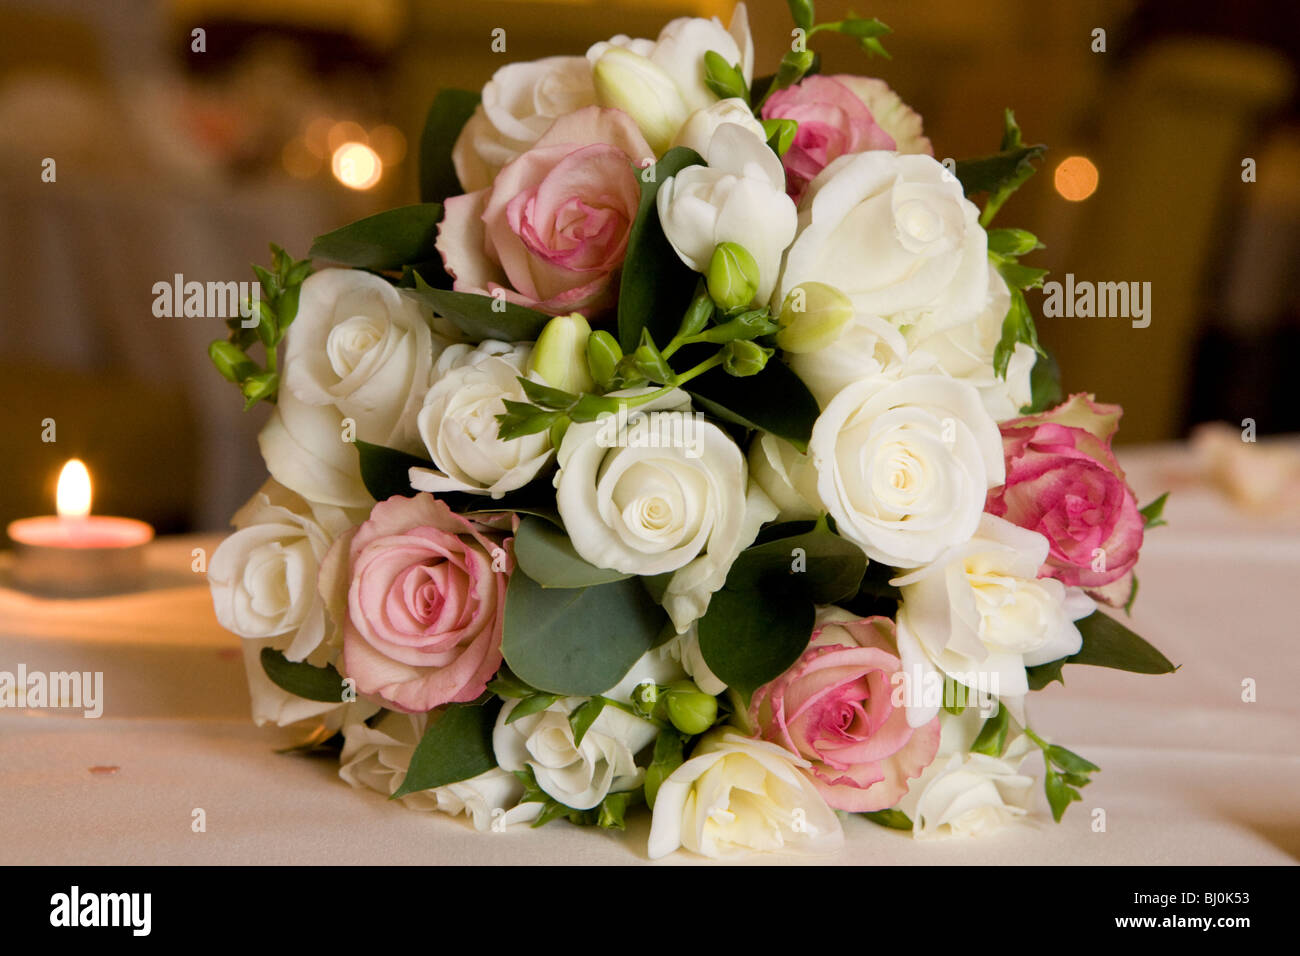 Bouquet Of Pink Cream And White Roses Flowers On A Wedding Table